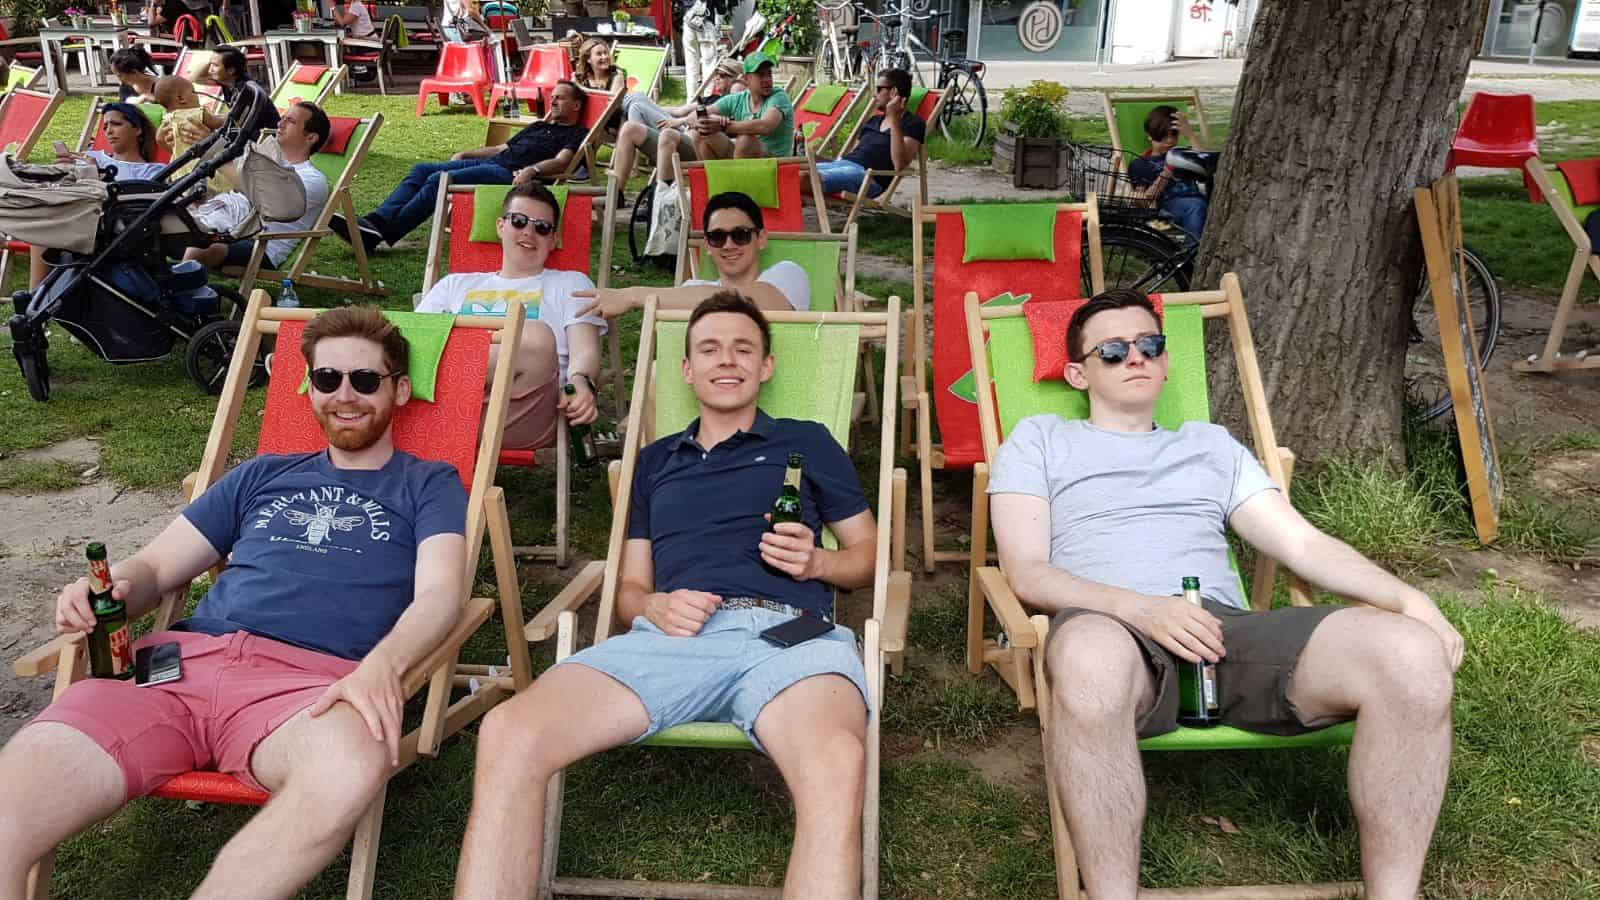 lads-drinking-beer-in-deck-chairs